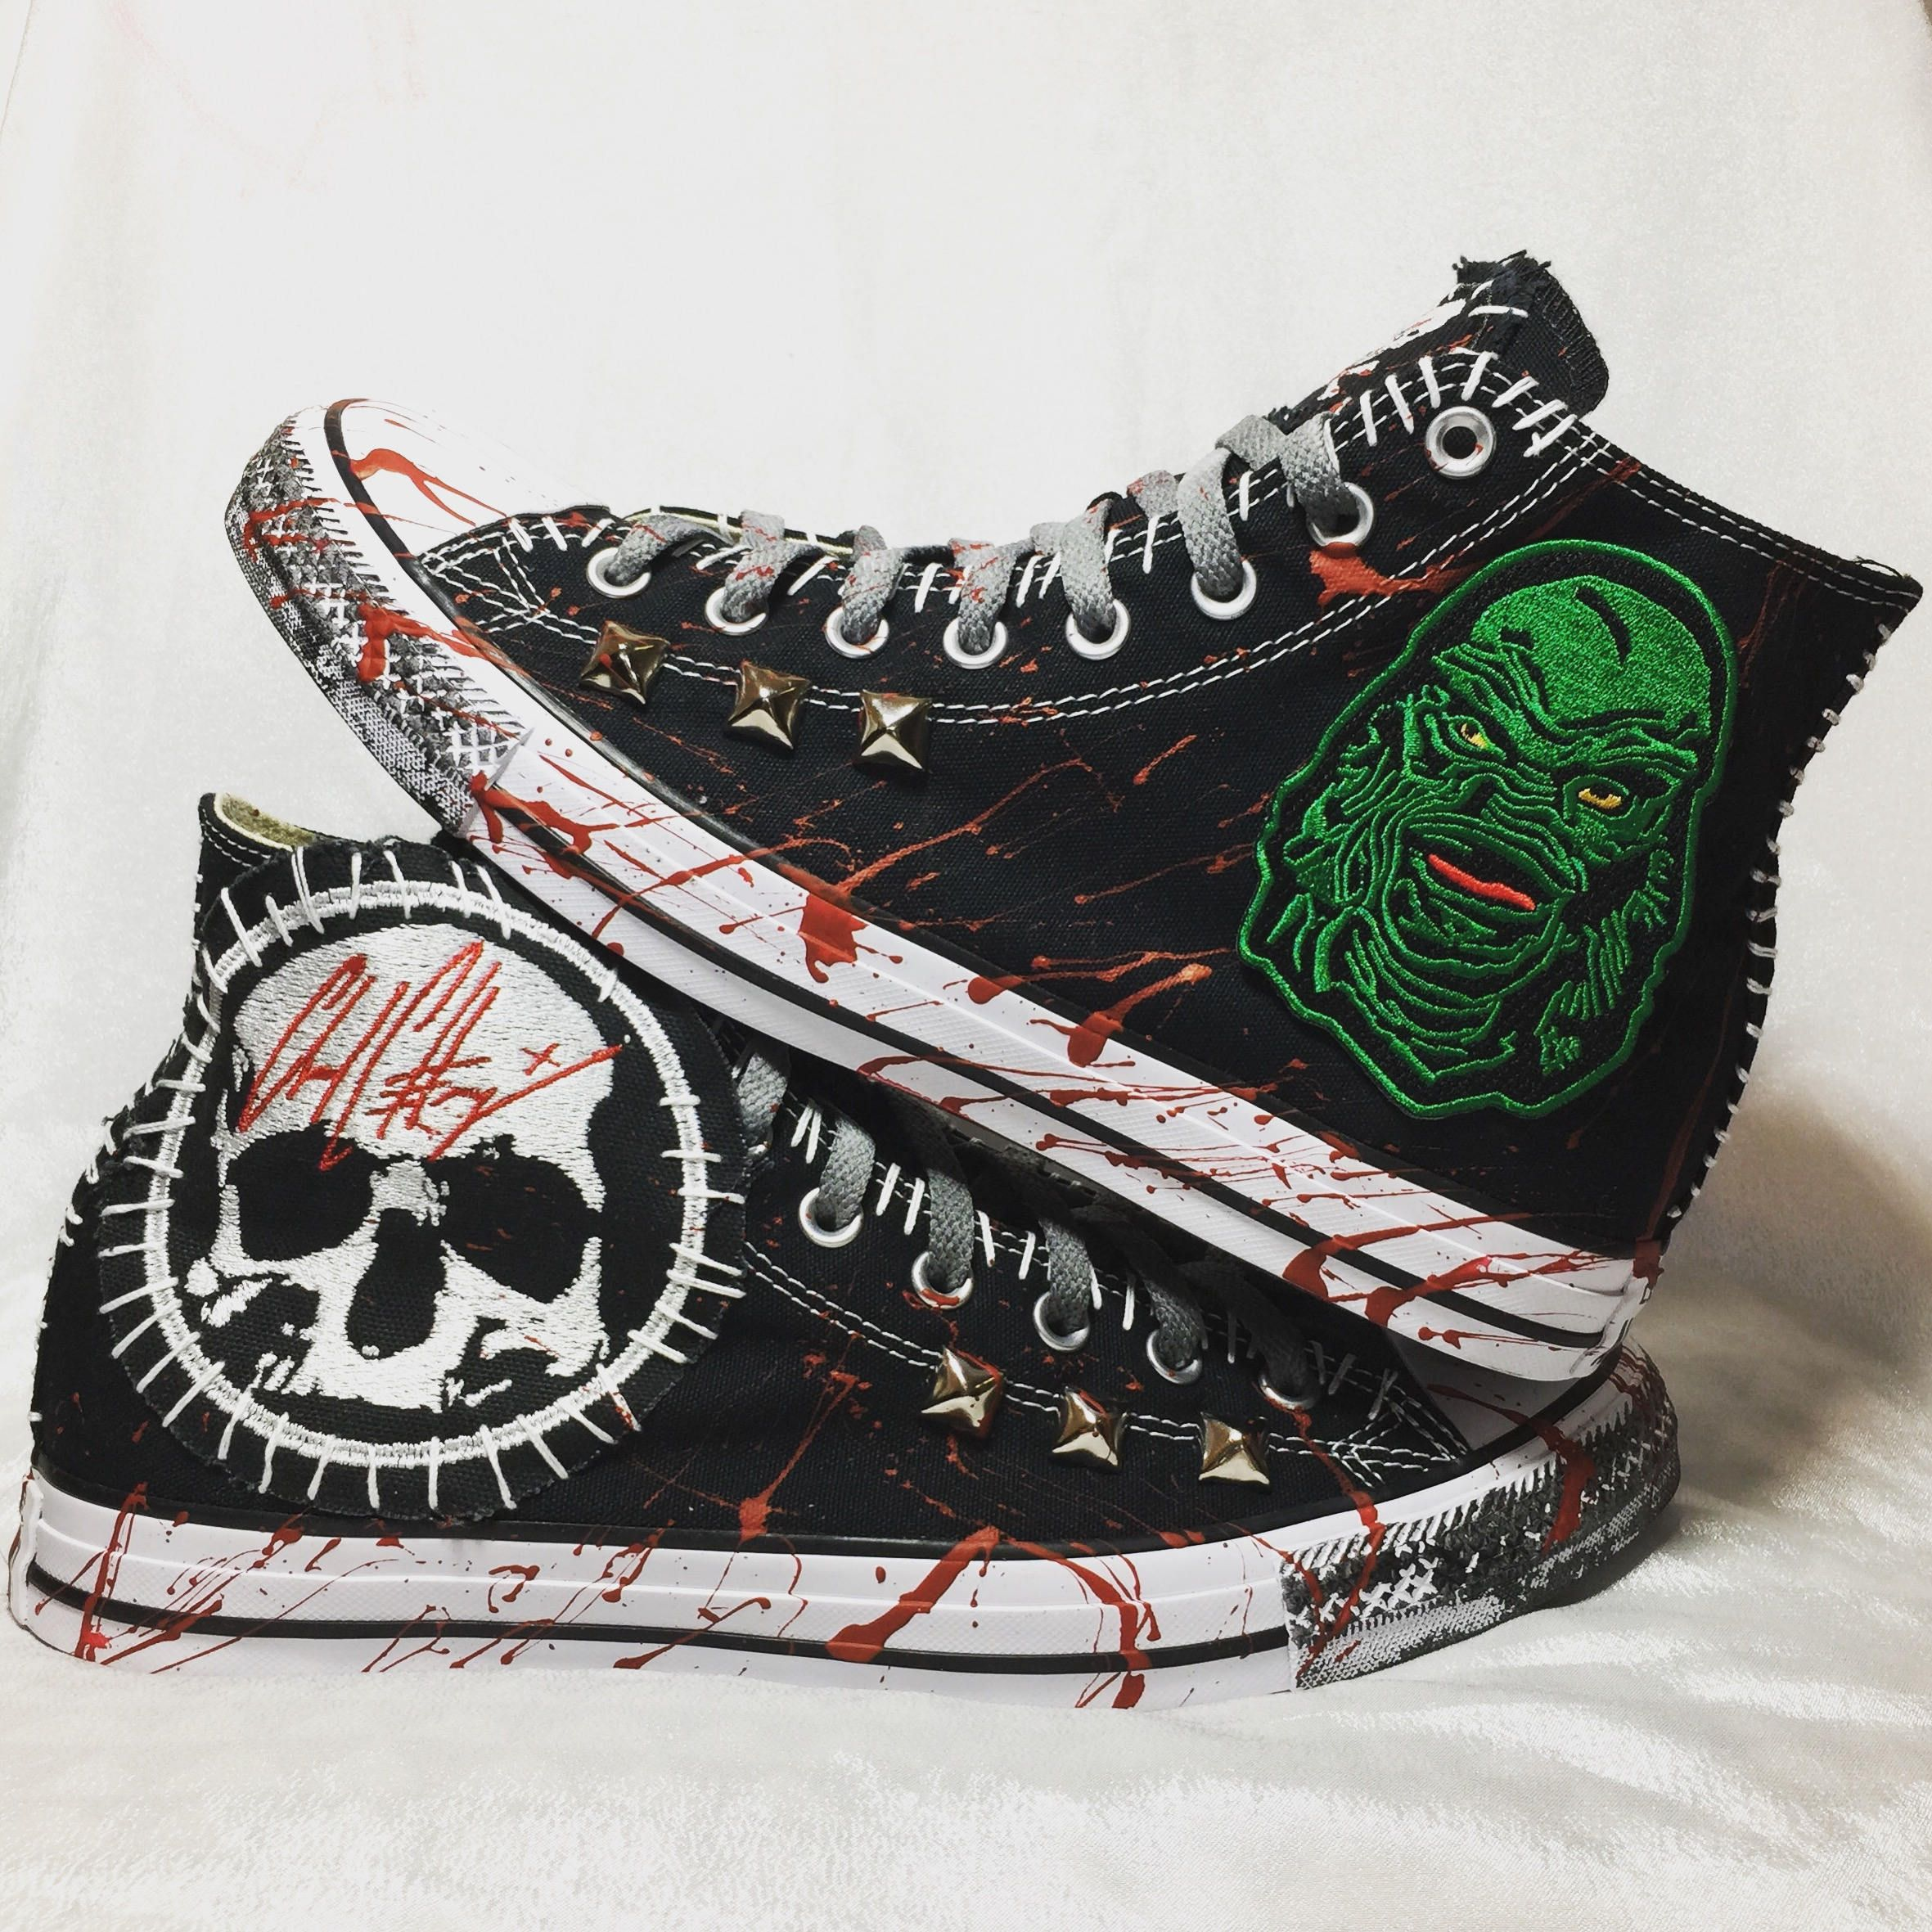 9f2aeb8f3a4b Gill Man horror shoes from ChadCherryClothing. Converse All Star embroidery  shoes.